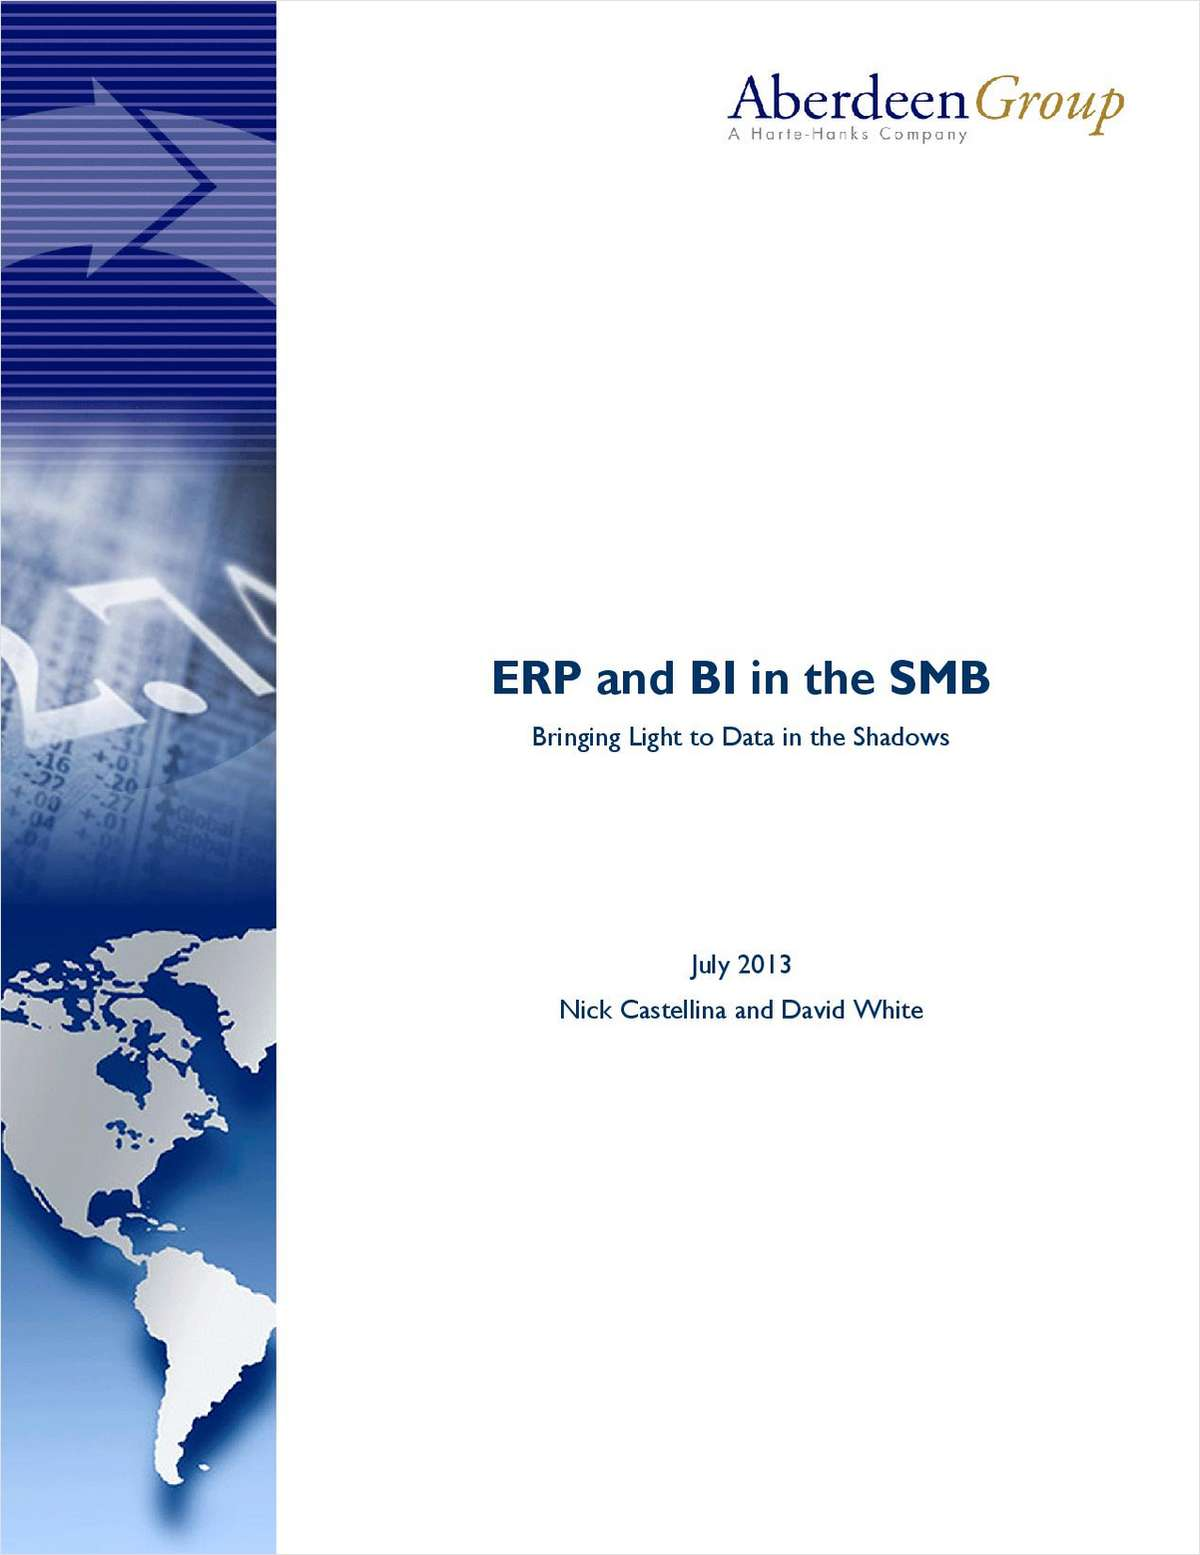 ERP and BI in the SMB: Bringing Light to Data in the Shadows